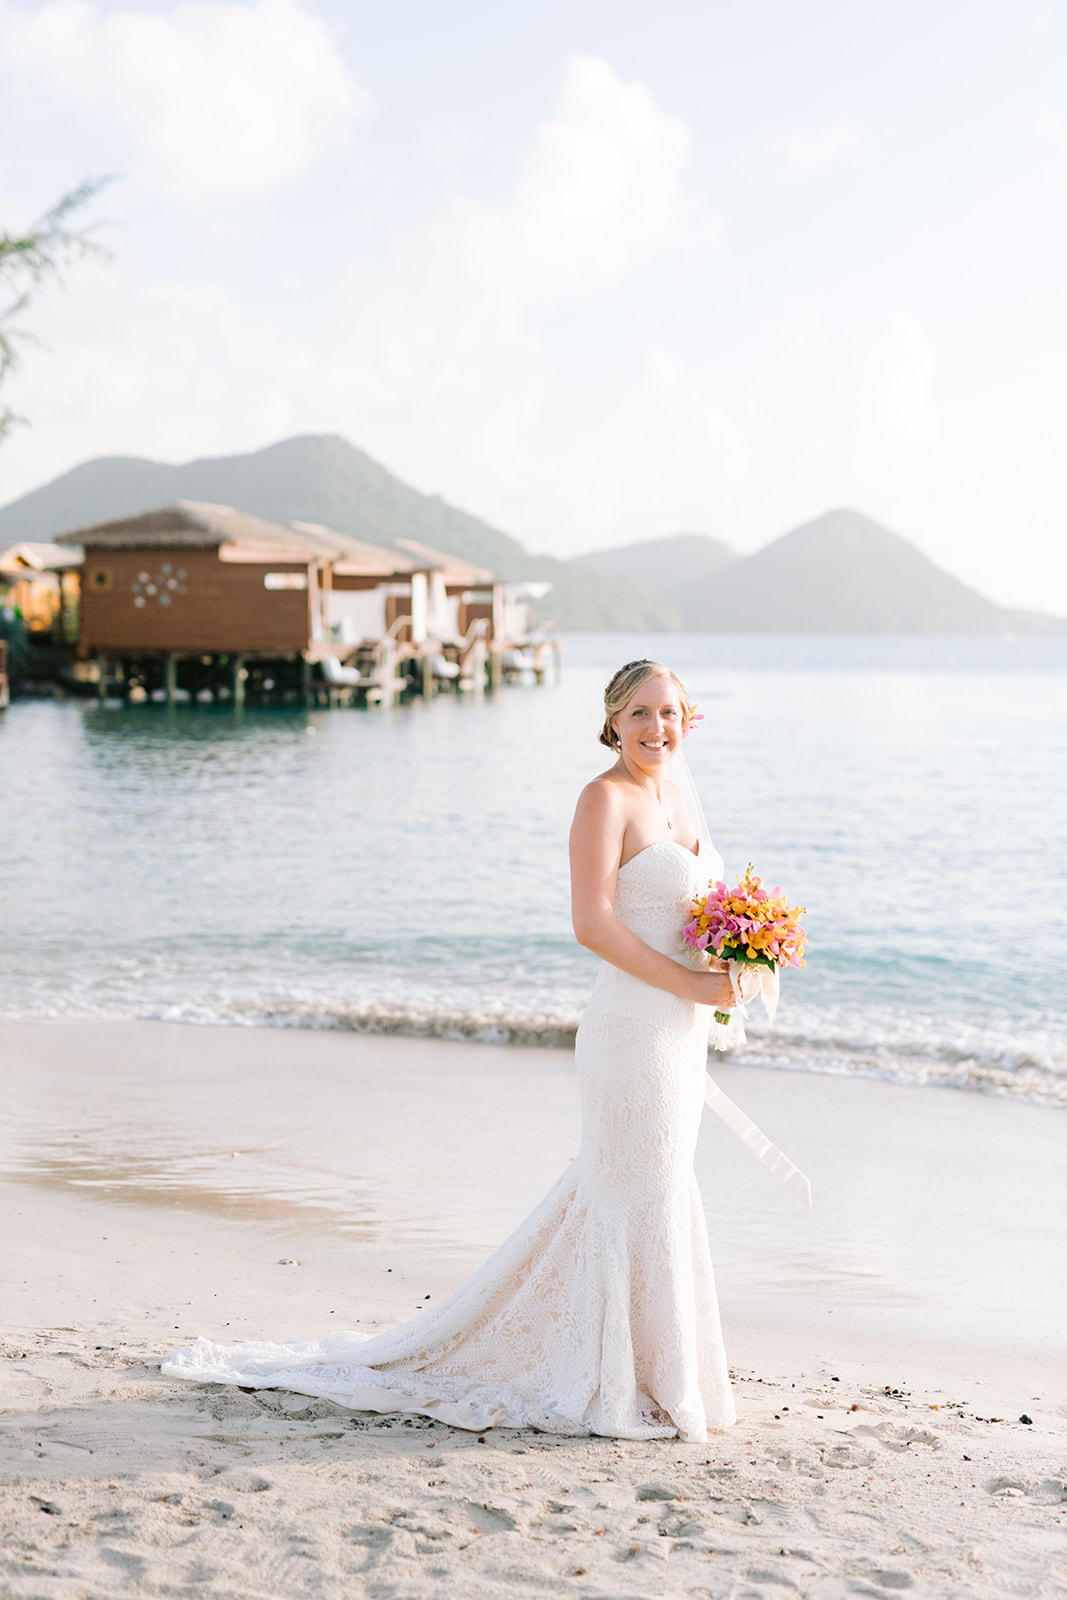 A Tropical Beach Wedding In St Lucia The Destination